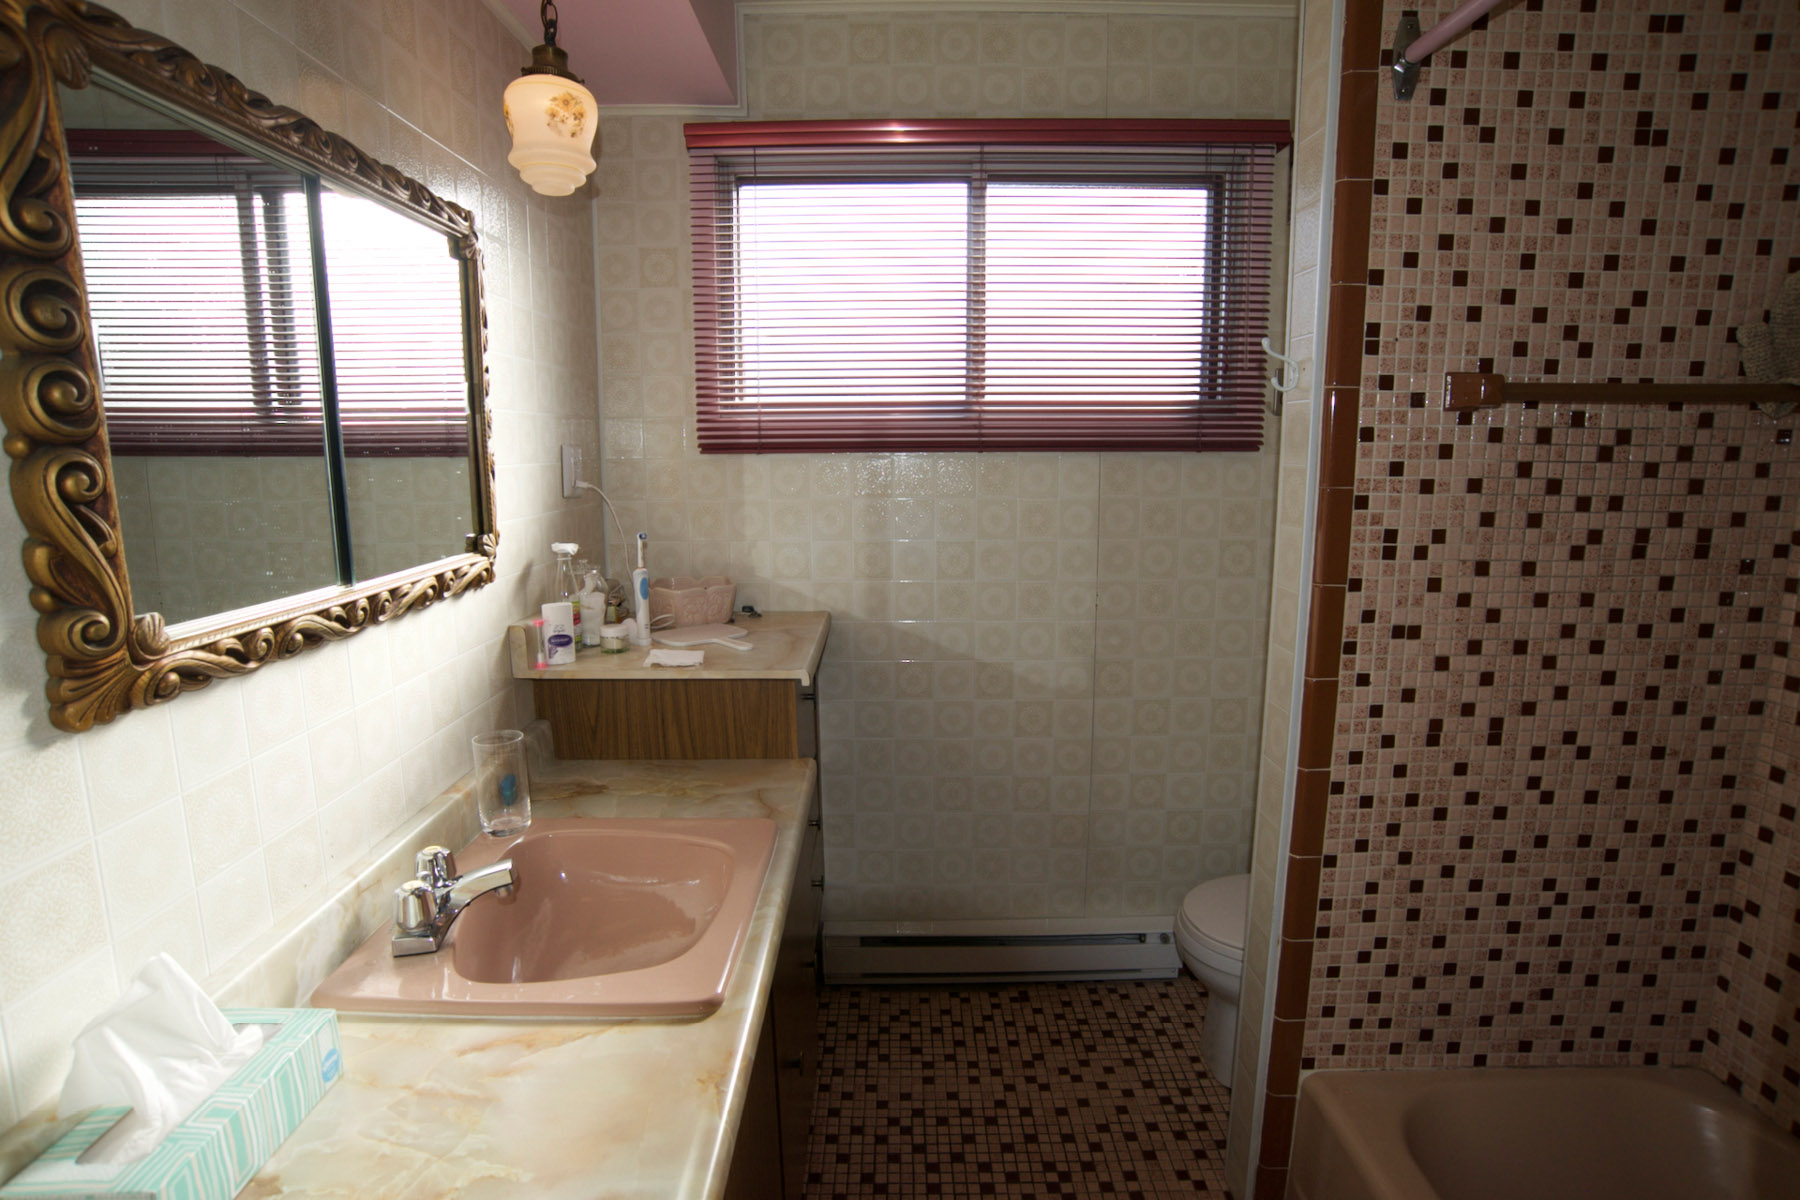 The bathroom before renovation